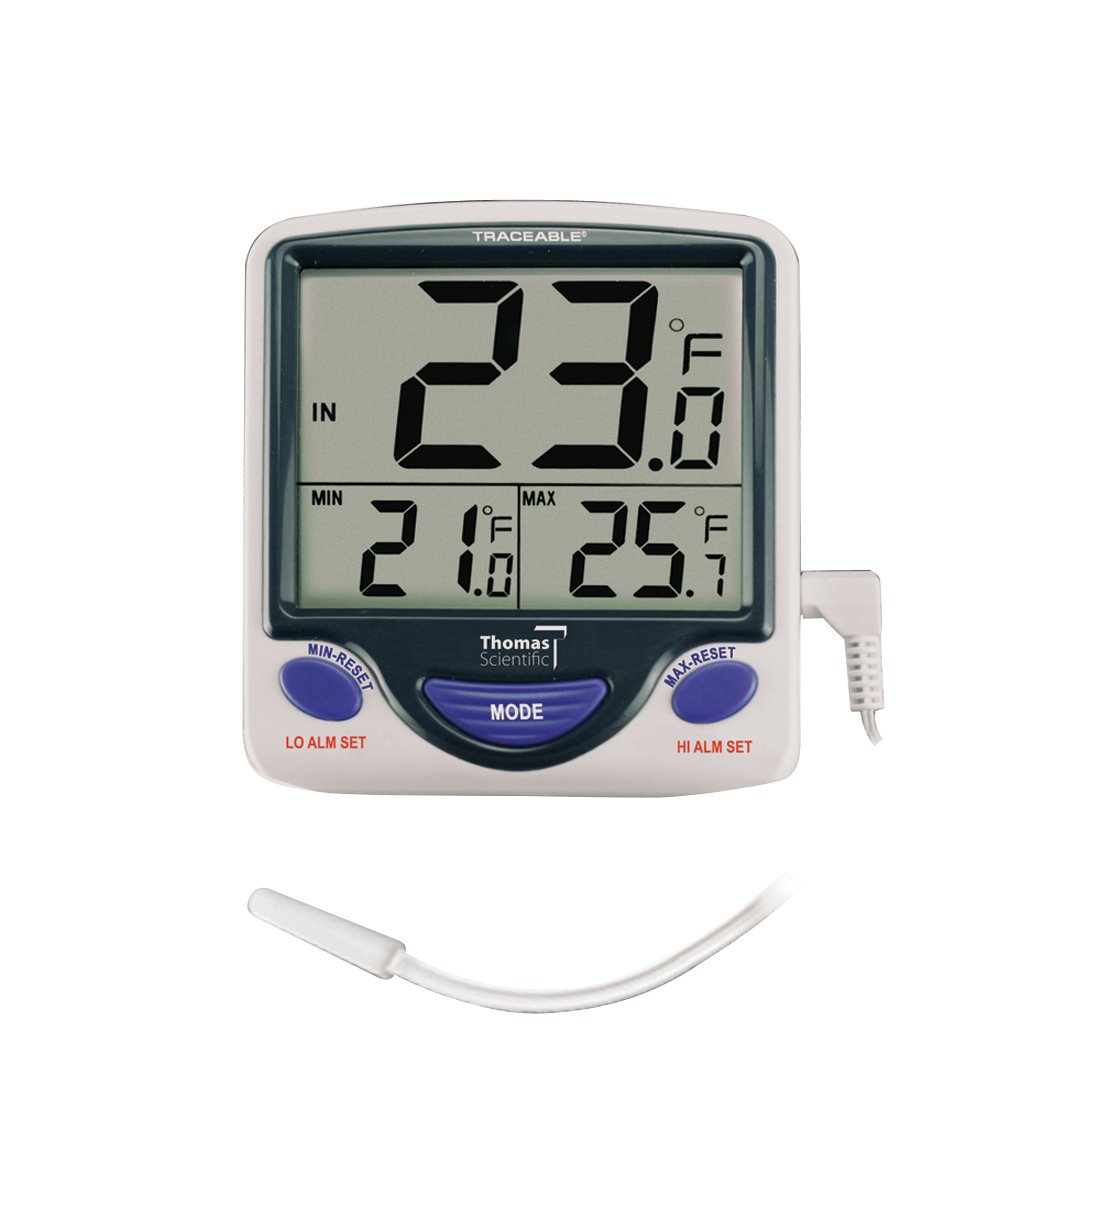 Control Traceable 4148 Jumbo Display Memory Monitoring Thermometer, -50°C to 70°C (-58°F to 158°F) Range, 0.1° Resolution